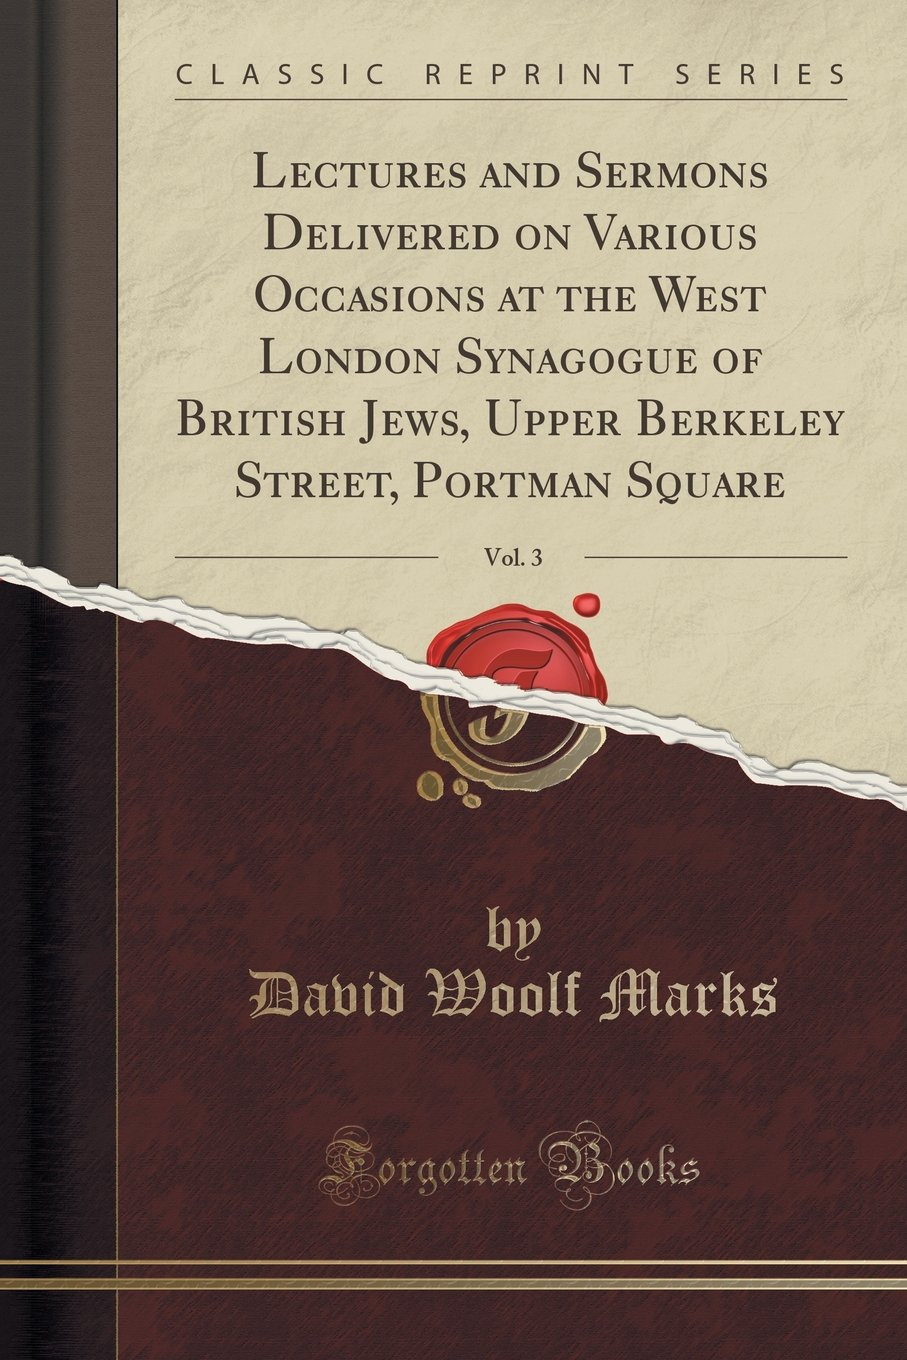 Download Lectures and Sermons Delivered on Various Occasions at the West London Synagogue of British Jews, Upper Berkeley Street, Portman Square, Vol. 3 (Classic Reprint) ebook